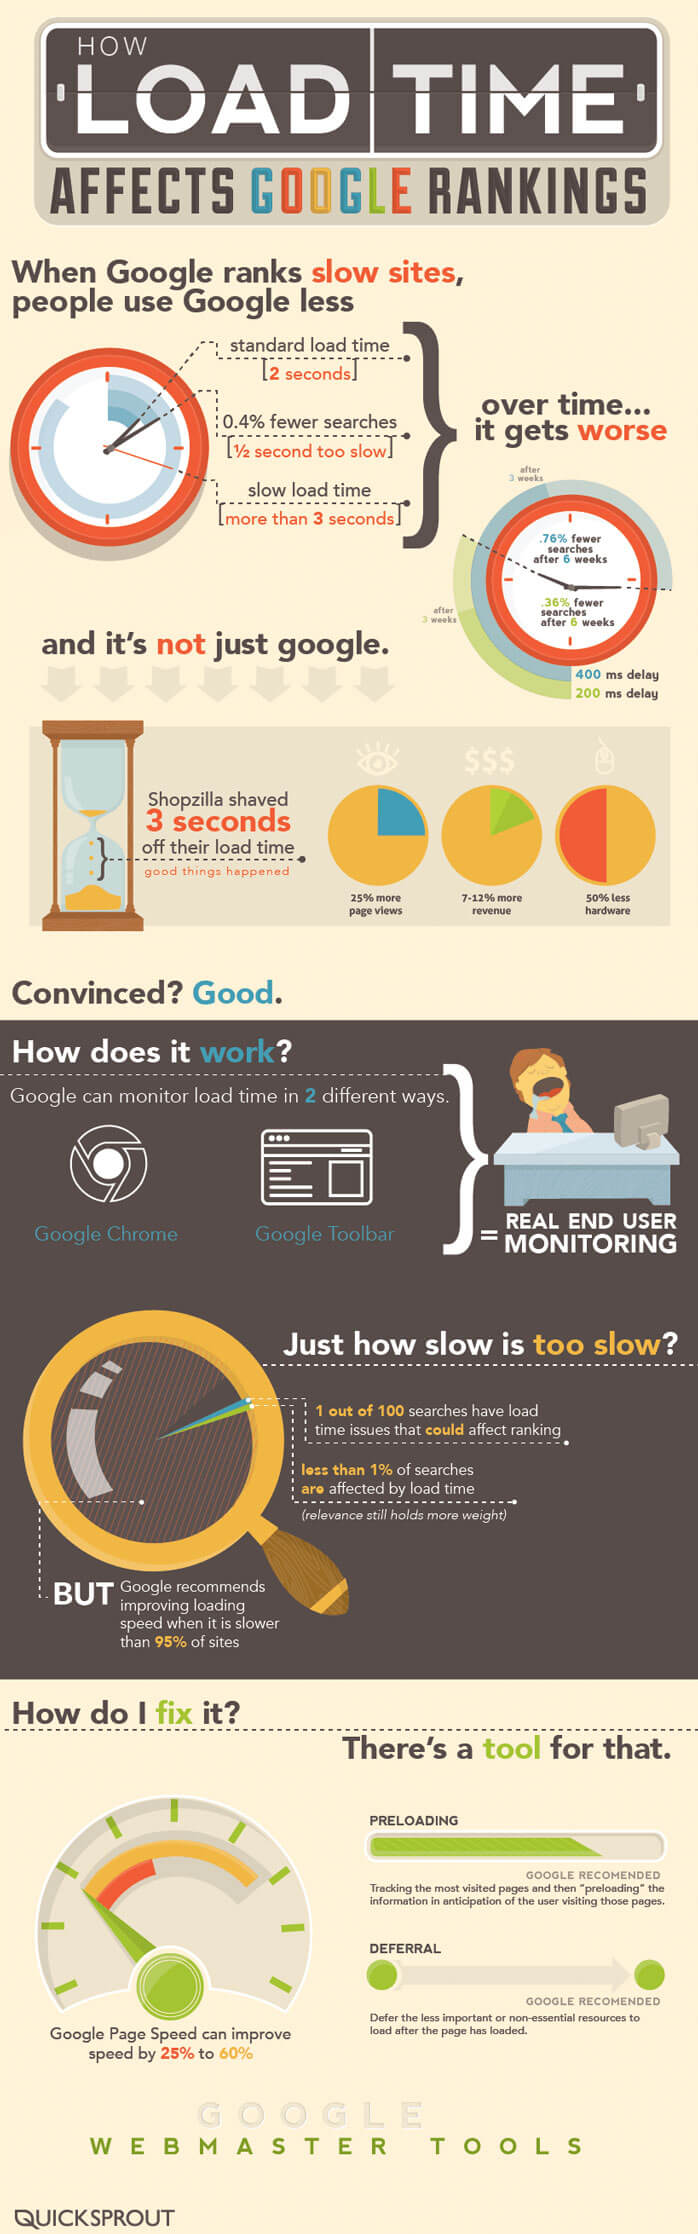 Slow website speed affects Google rankings.